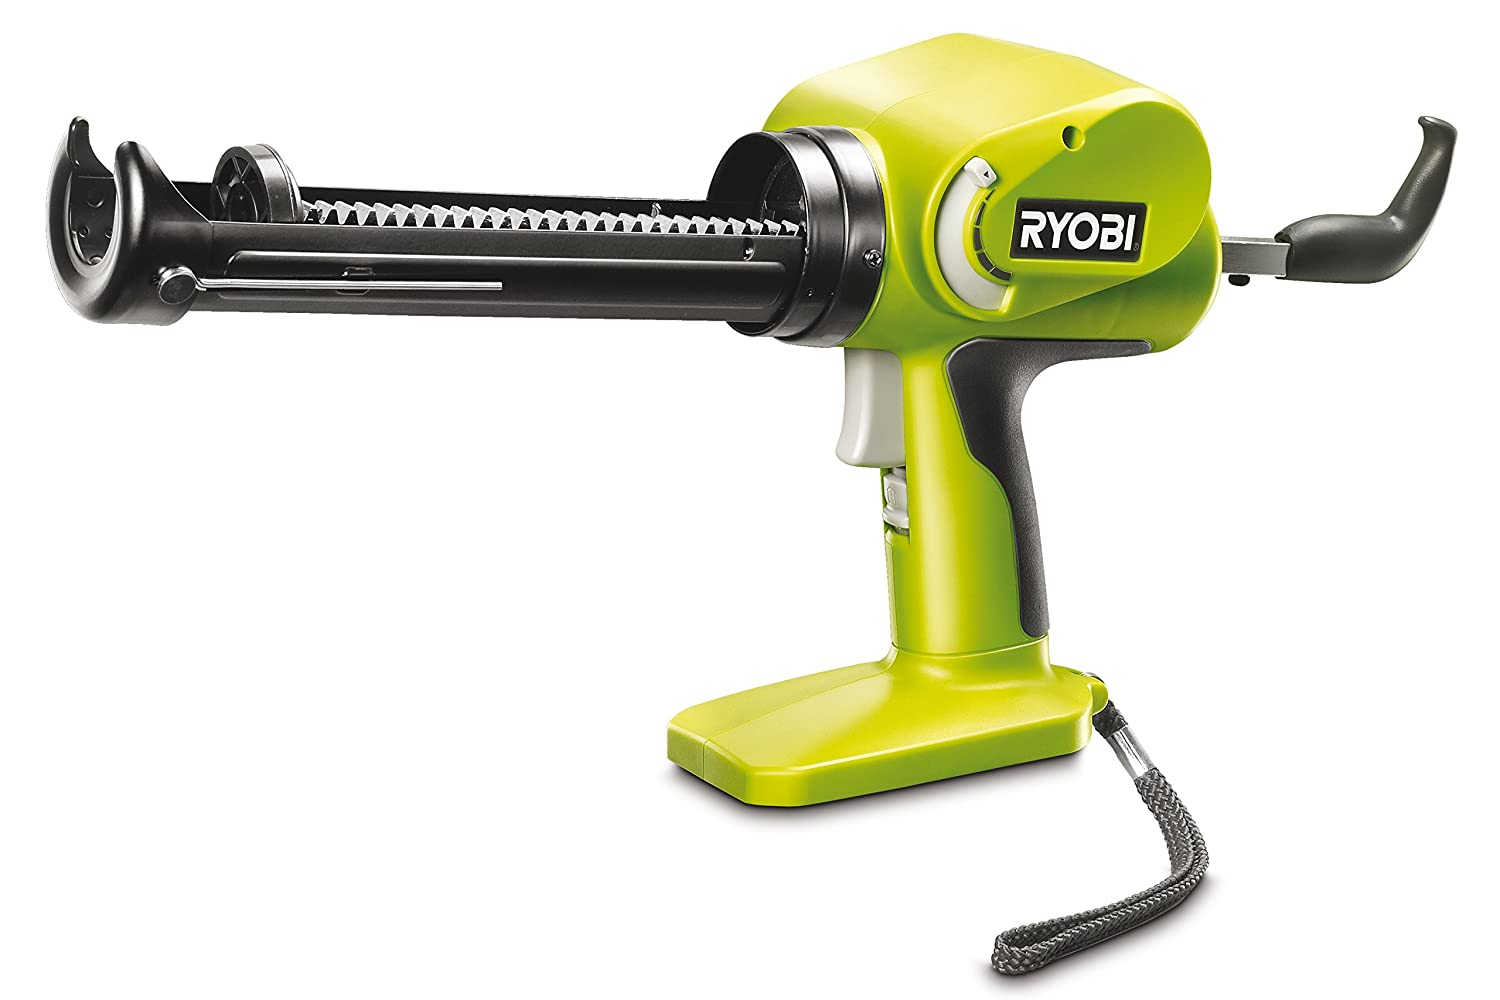 Ryobi CCG1801MHG ONE+ Caulking Gun, 18 V (Body Only)